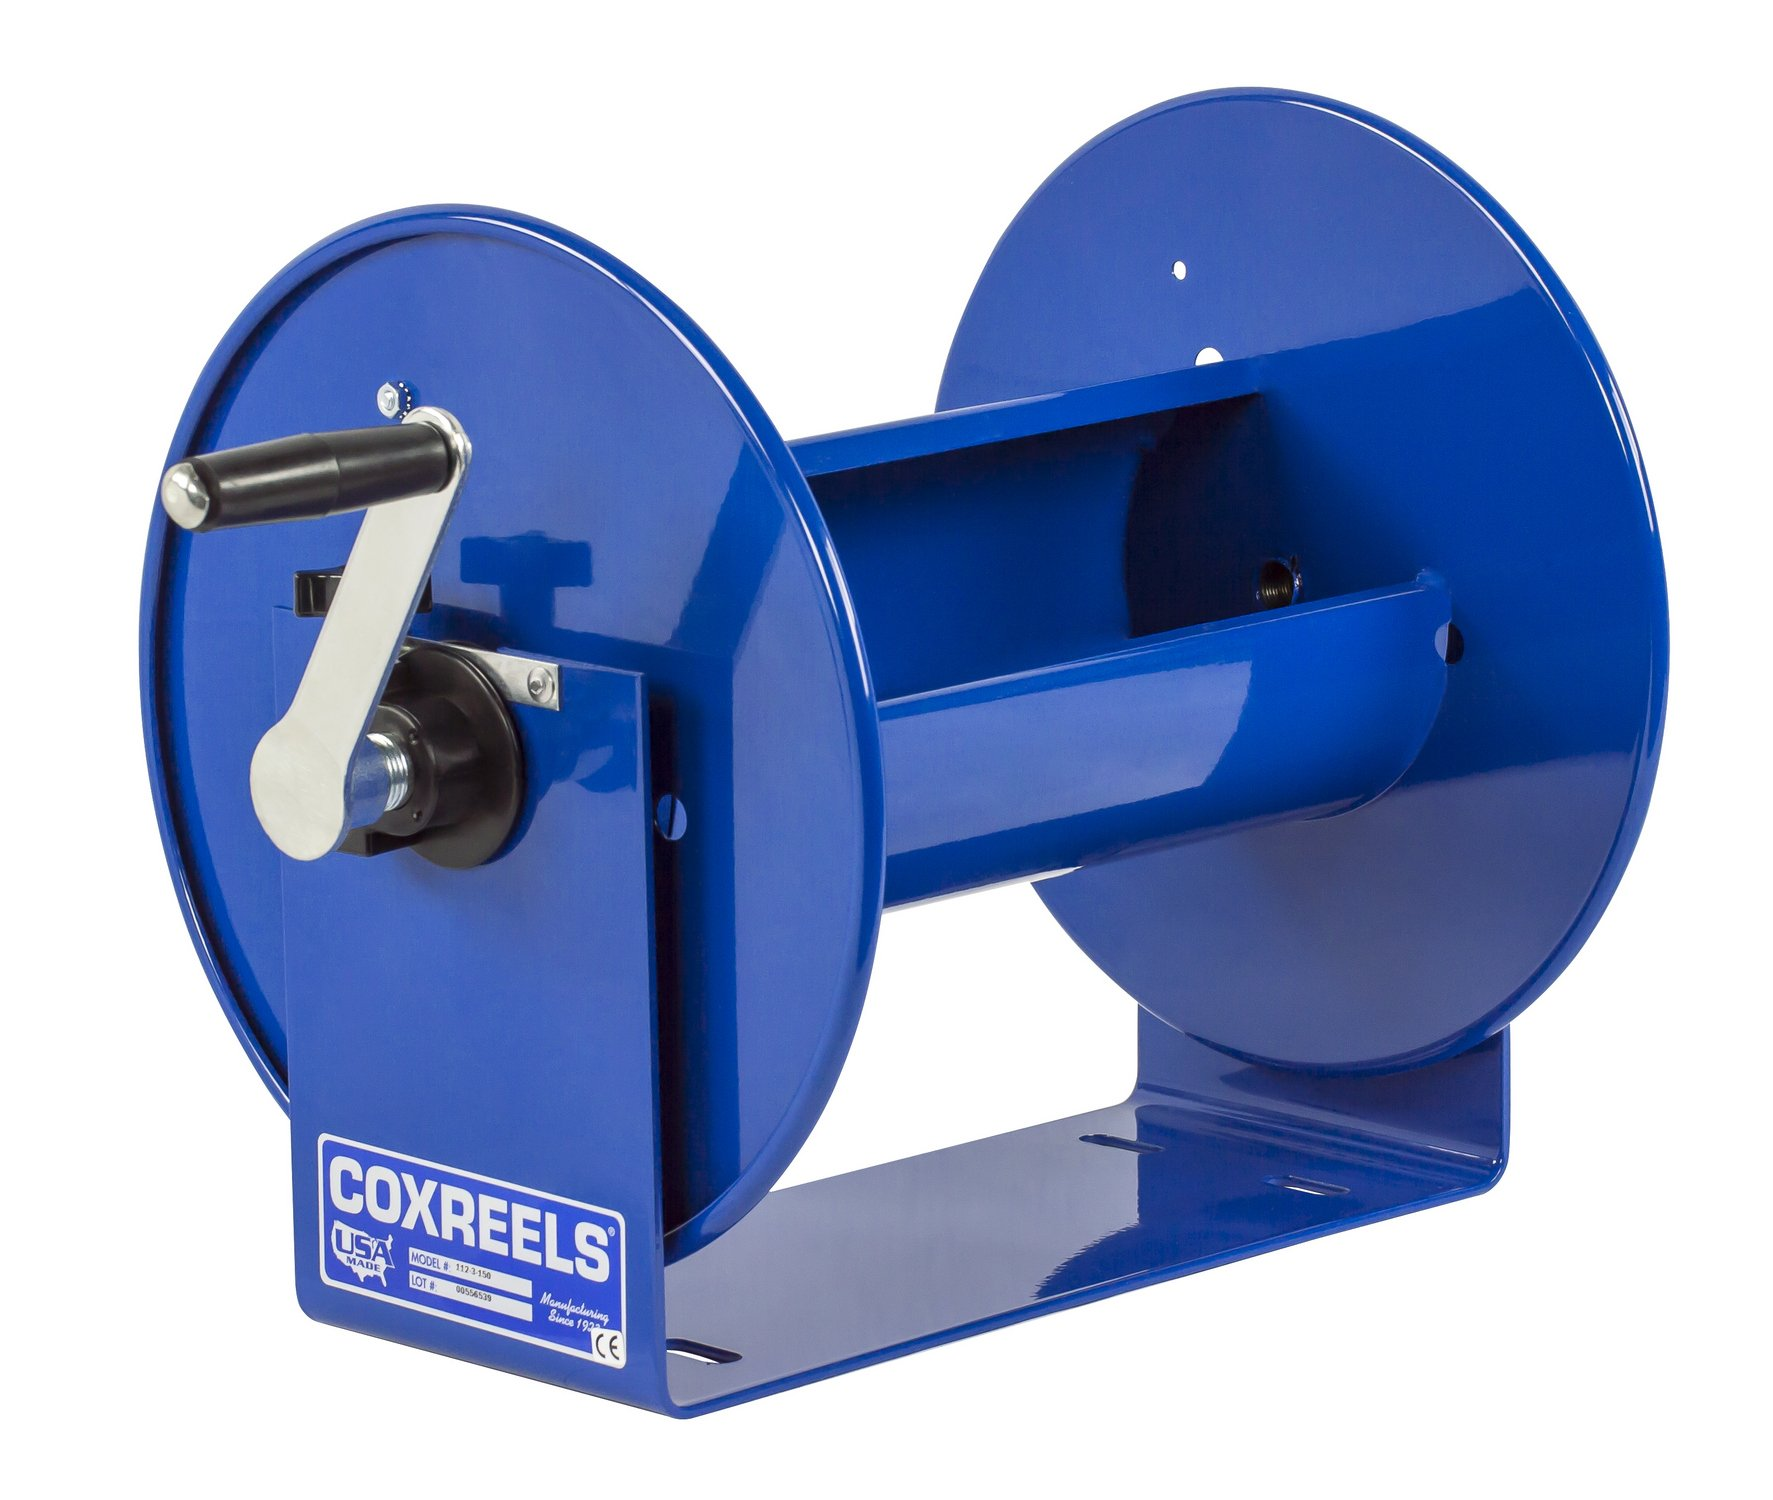 Coxreels 117-3-250 Compact Hand Crank Hose Reel, 4,000 PSI, Holds 3/8'' x 250' Length Hose, Hose Not Included by Coxreels (Image #1)